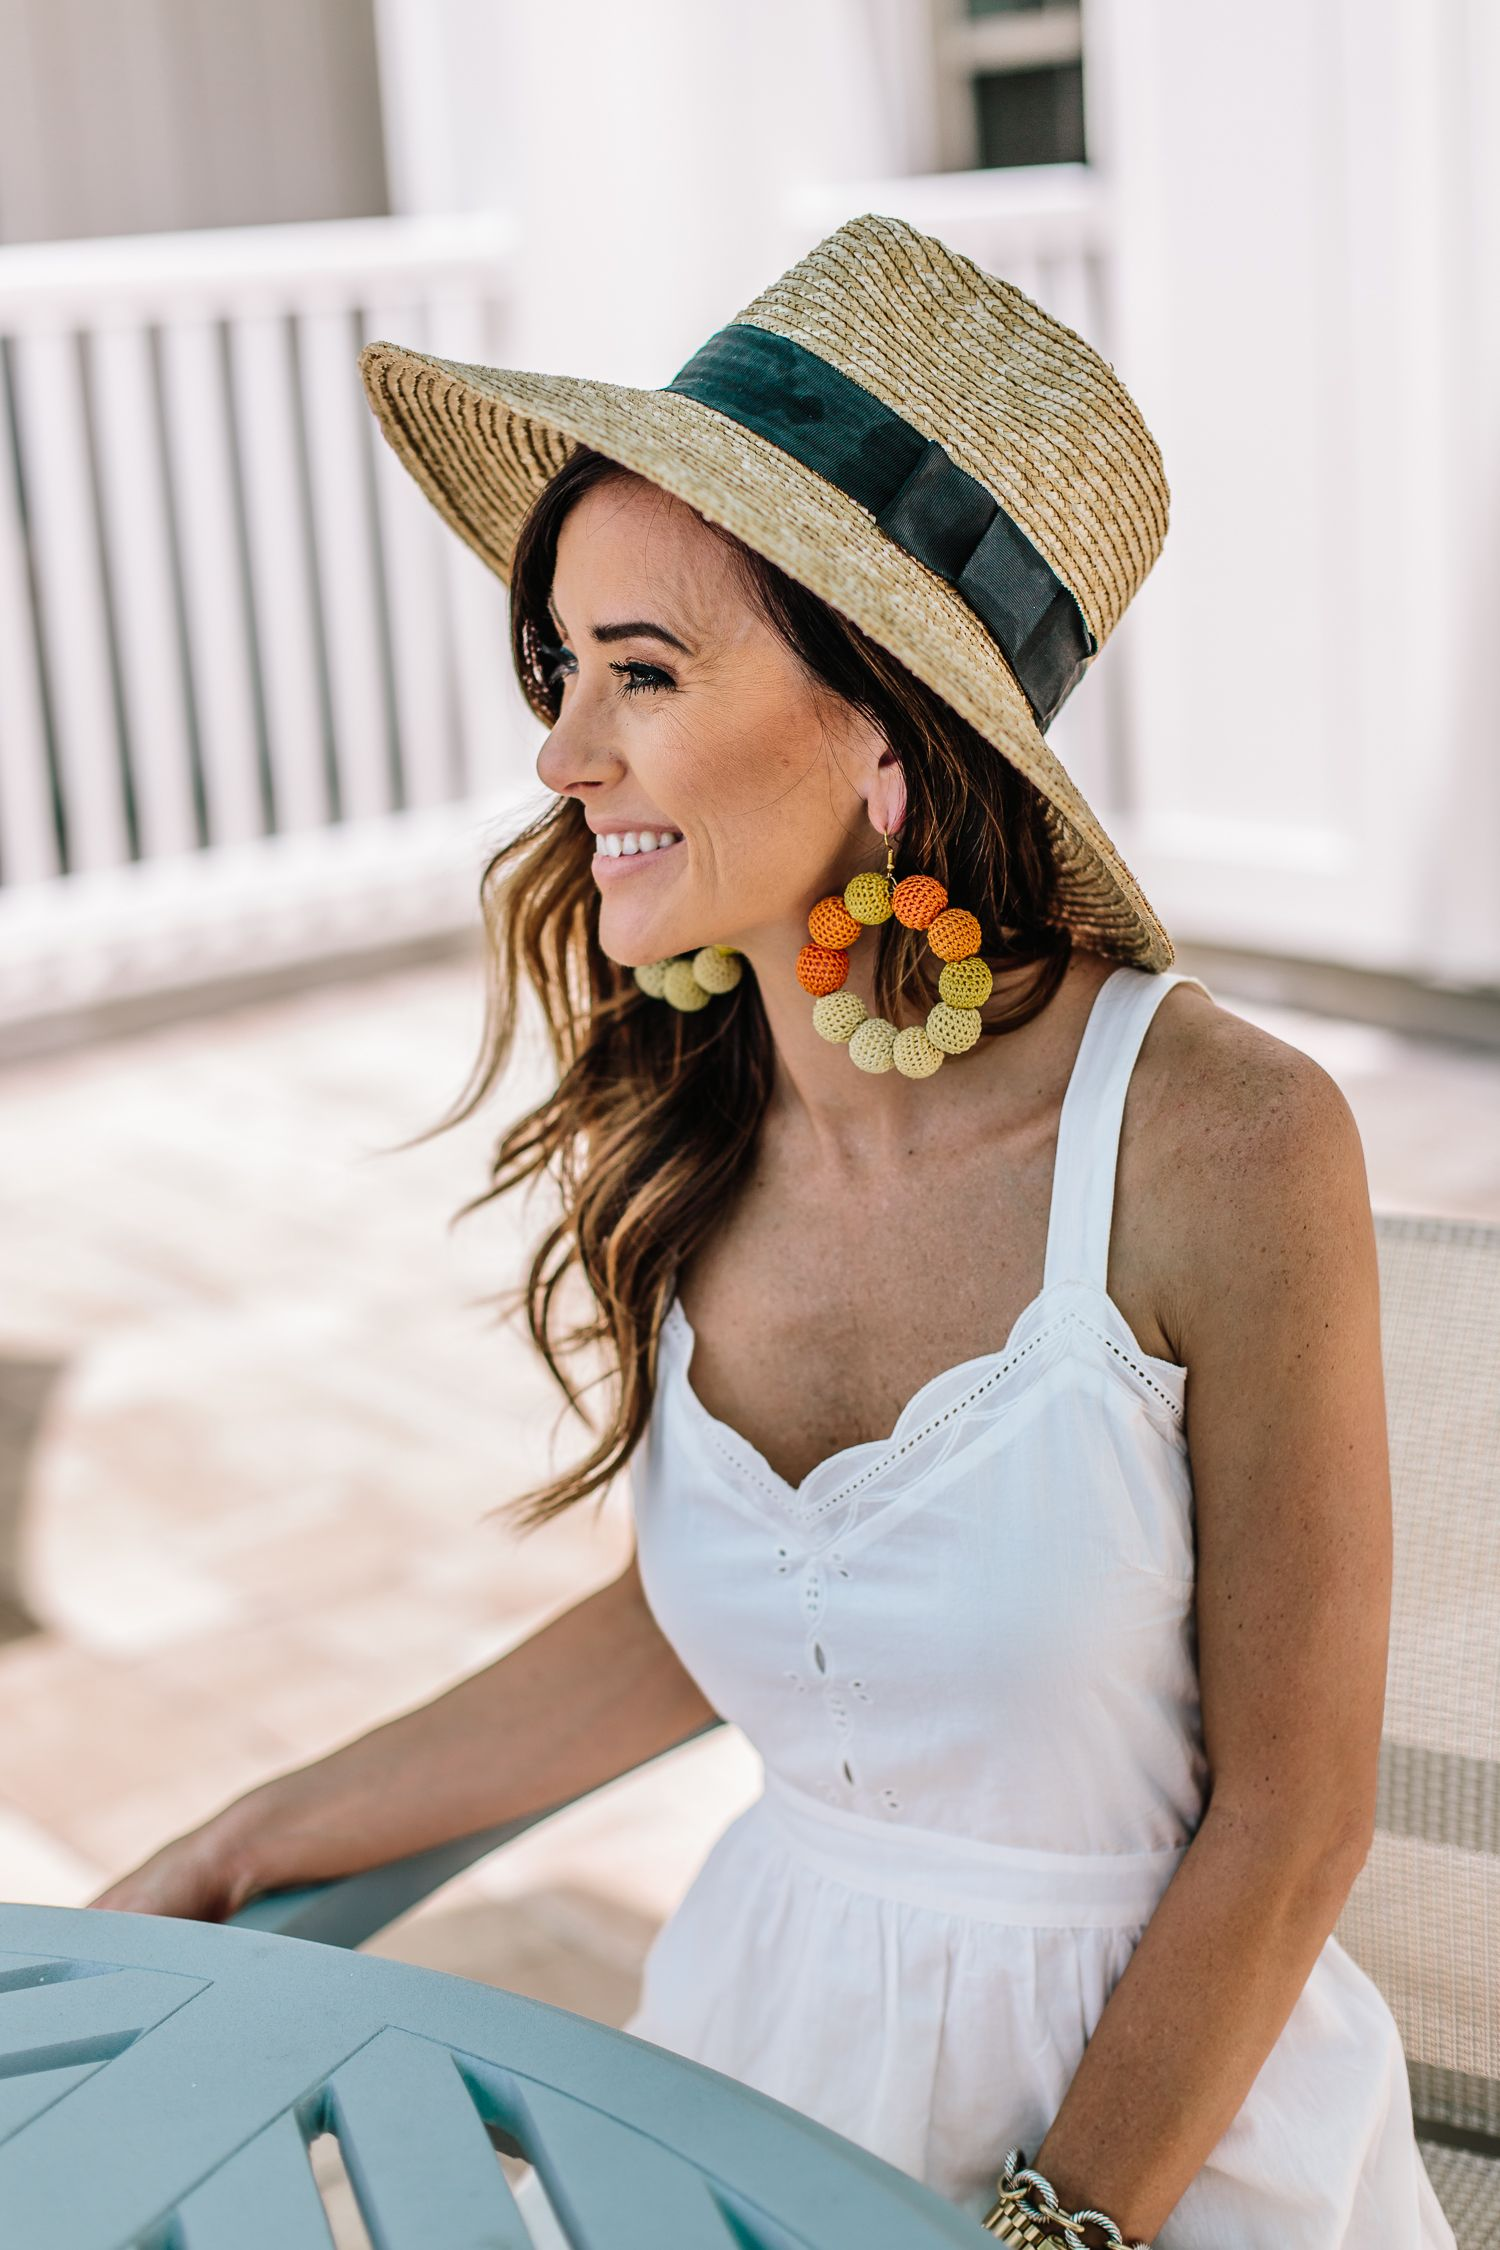 ca5be9f4 Seven Summer Beauty Products I'm Loving + Where To Buy Them For Less |  Alyson Haley